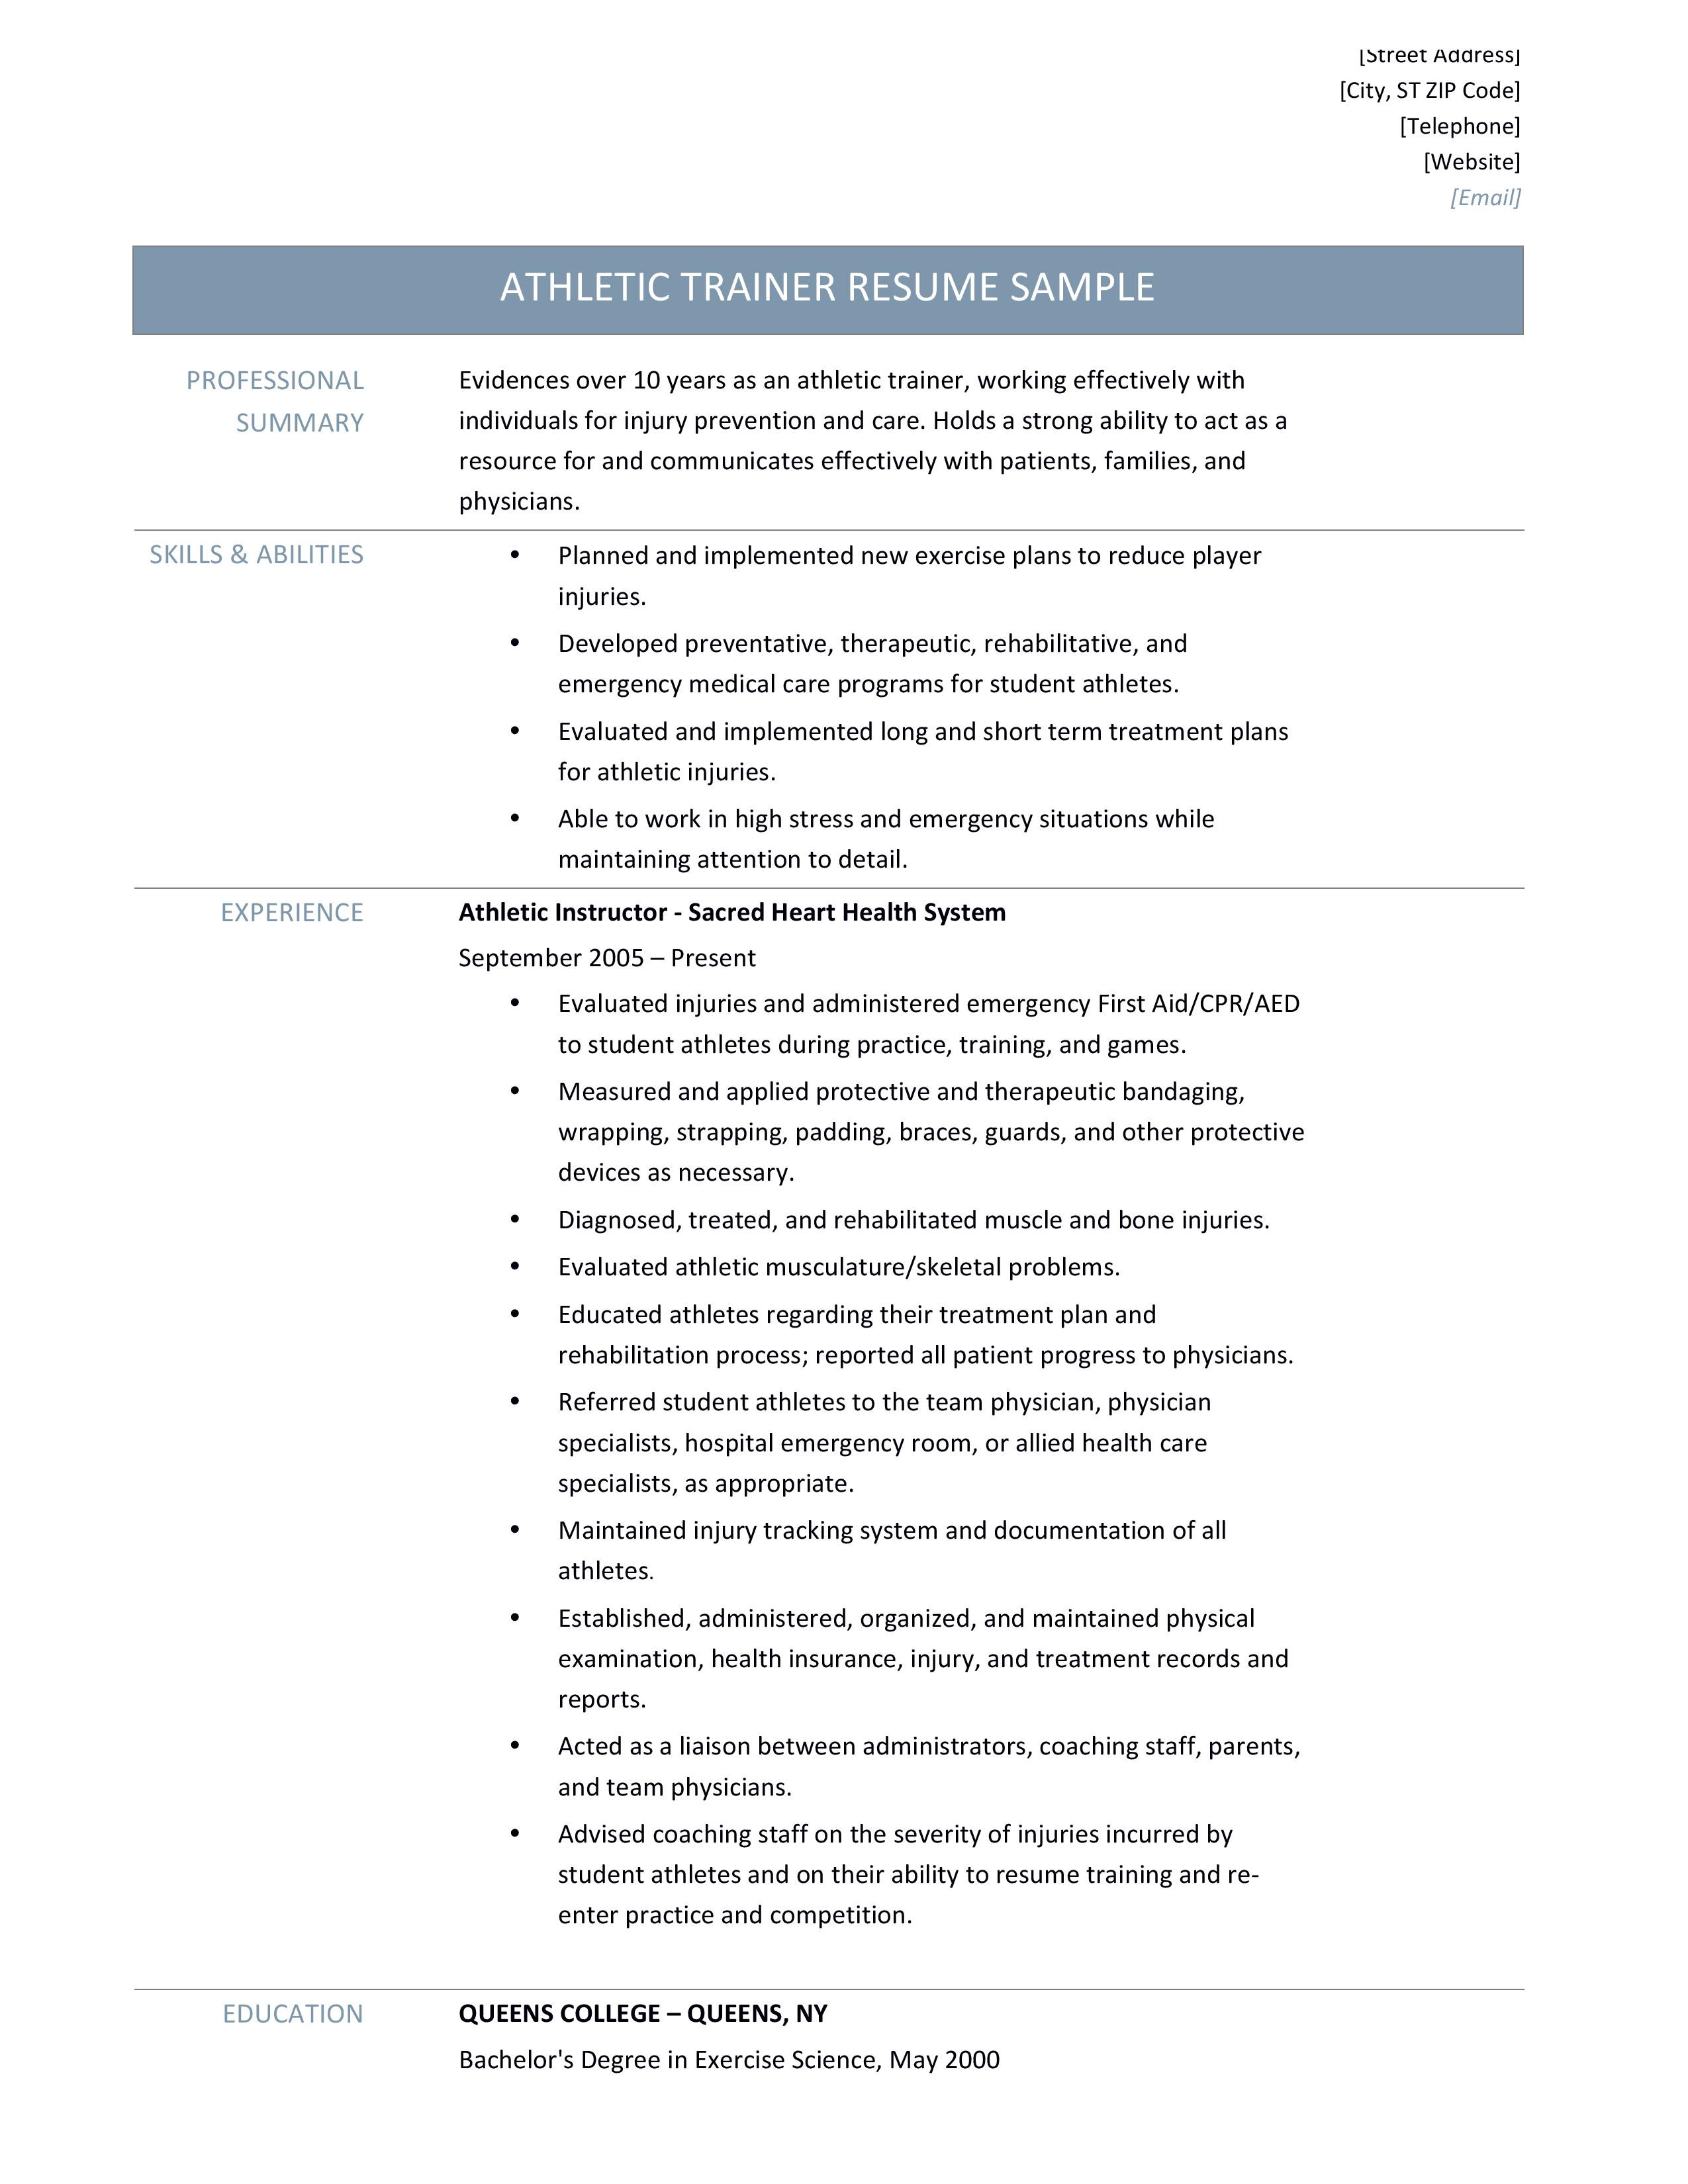 Athletic Trainer Knowledge Skills And Abilities